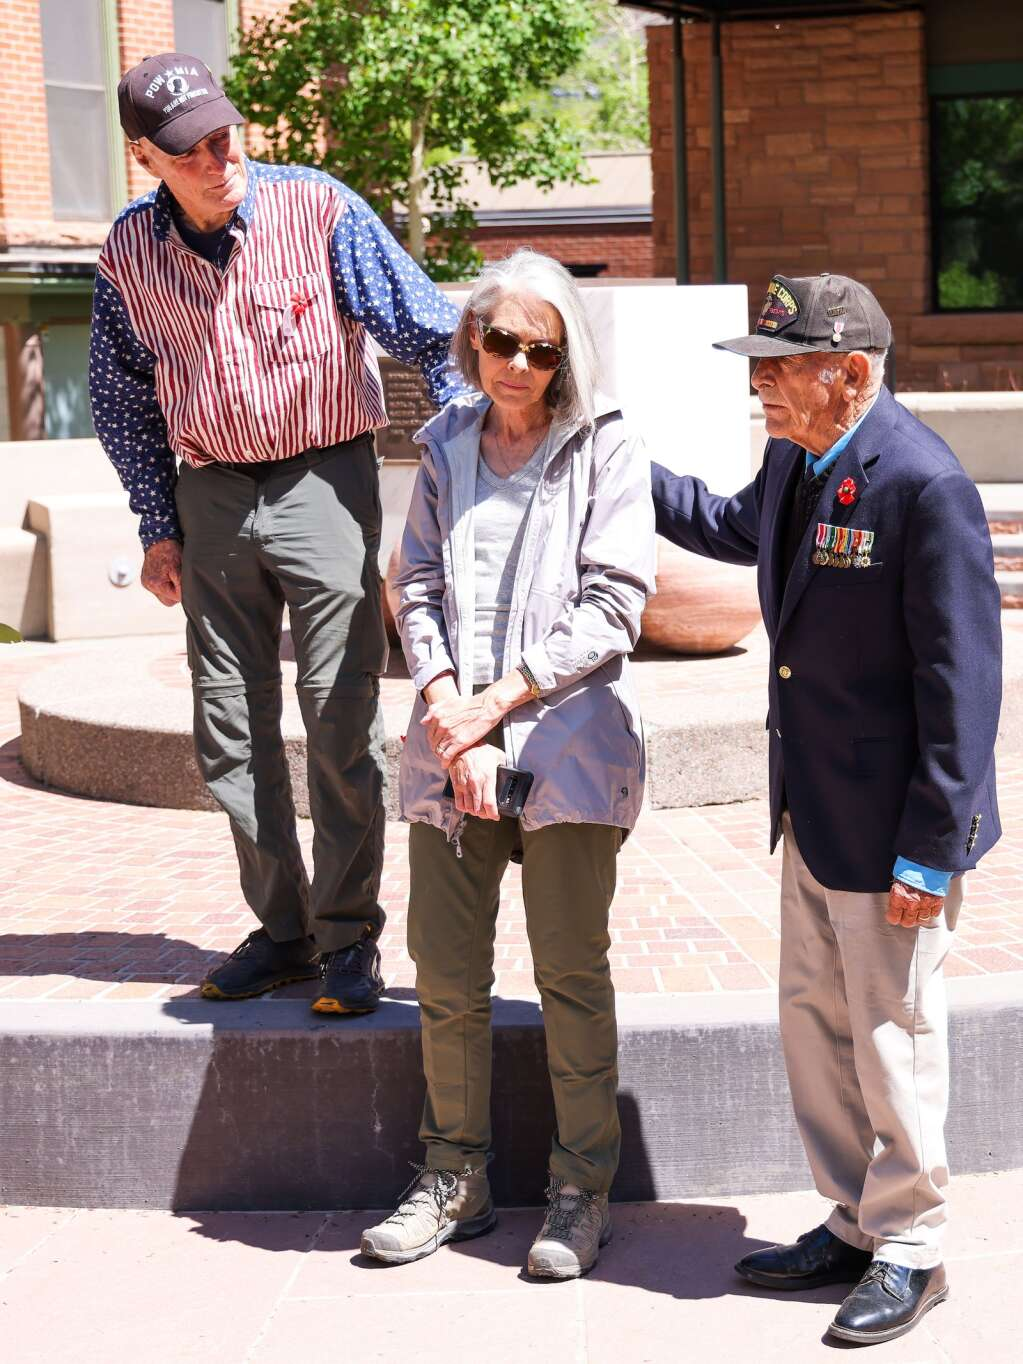 Veterans Dick Merritt, right, and Dan Glidden, left, stand with Susan Gomes, wife of the late Pepper Gomes, during the annual Memorial Day ceremony on Monday, May 31, 2021, at Pitkin County Veterans Memorial Park in Aspen. Photo by Austin Colbert/The Aspen Times.